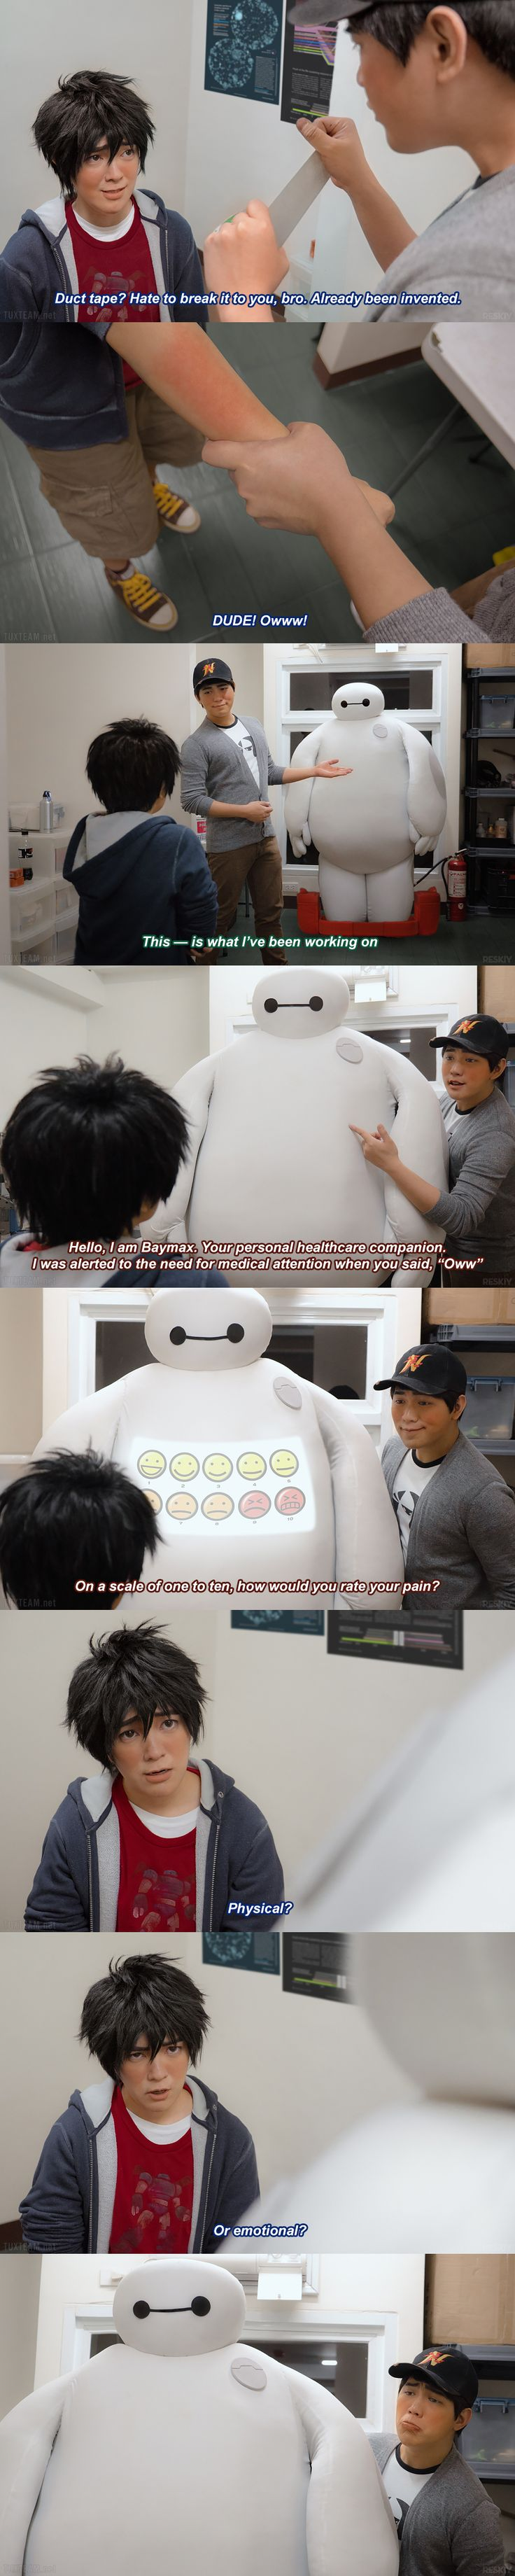 """Big Hero 6: How would you rate your pain? by behindinfinity.deviantart.com on @DeviantArt - Hiro, Tadashi, and Baymax from """"Big Hero 6""""; uploaded by the first. This is Part 1 of 2; also, just to be clear, Baymax is also played by a cosplayer here."""